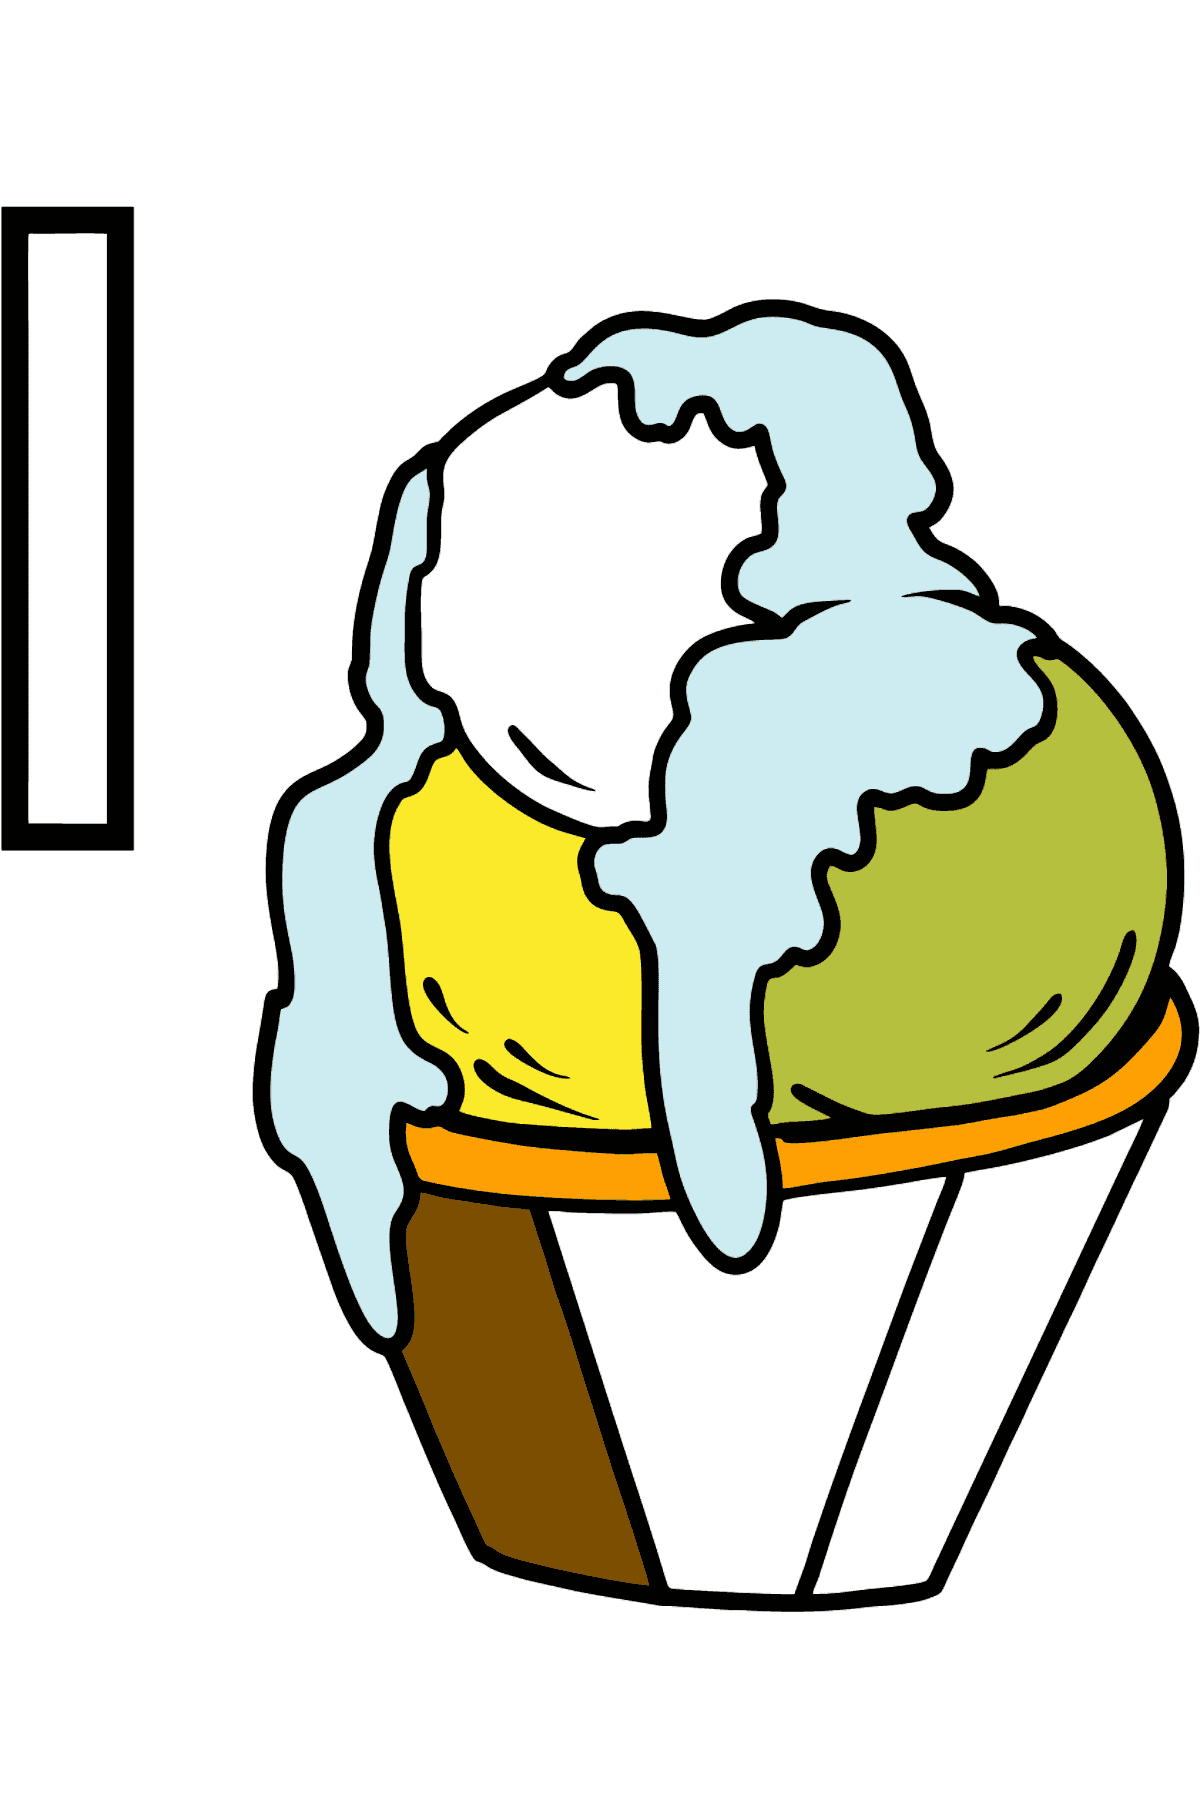 English Letter I coloring pages - ICE CREAM - Coloring Pages for Kids